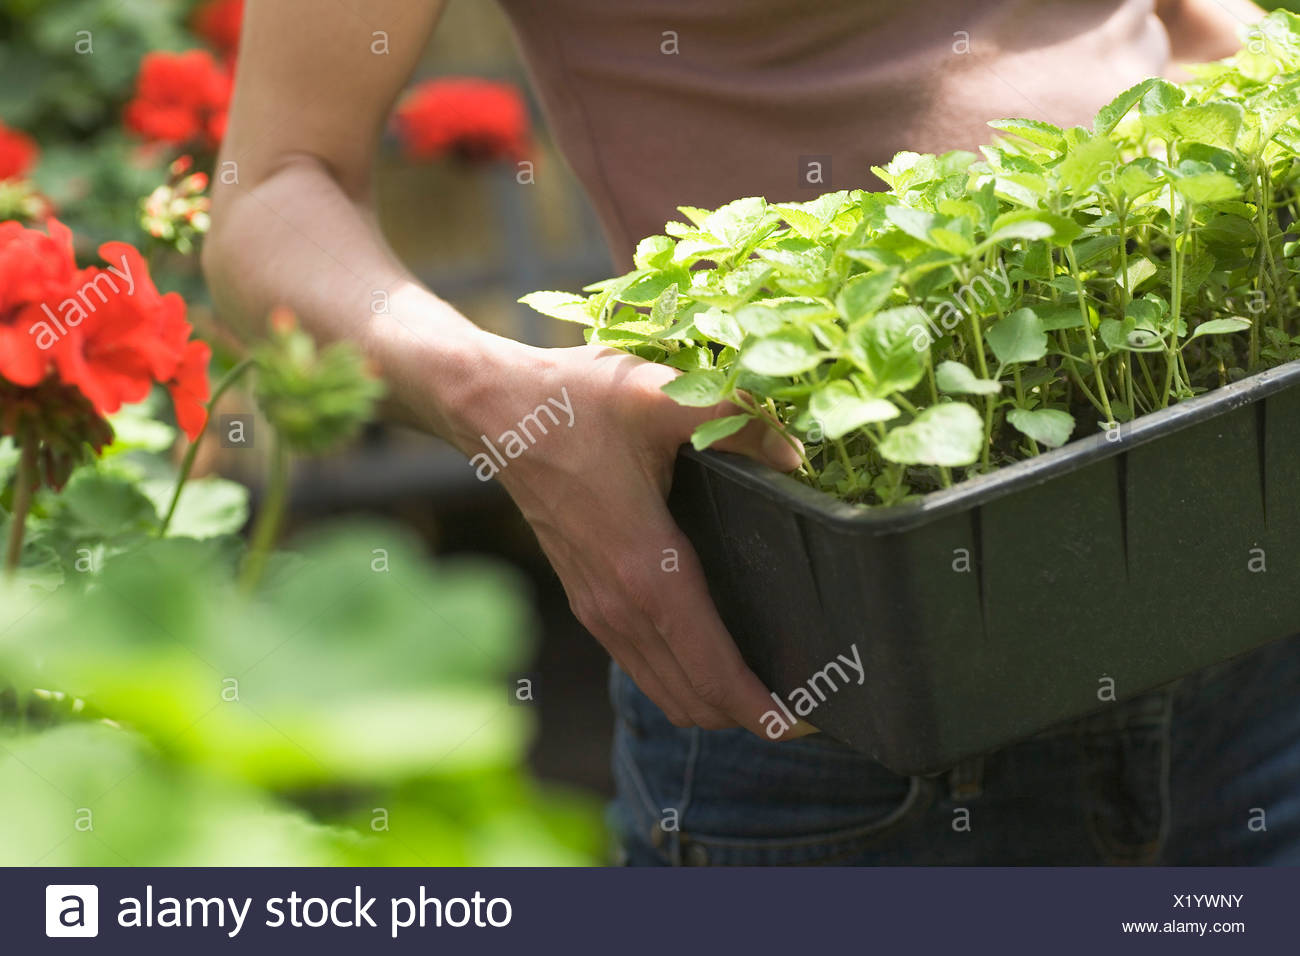 detail of young woman carrying flower box - Stock Image